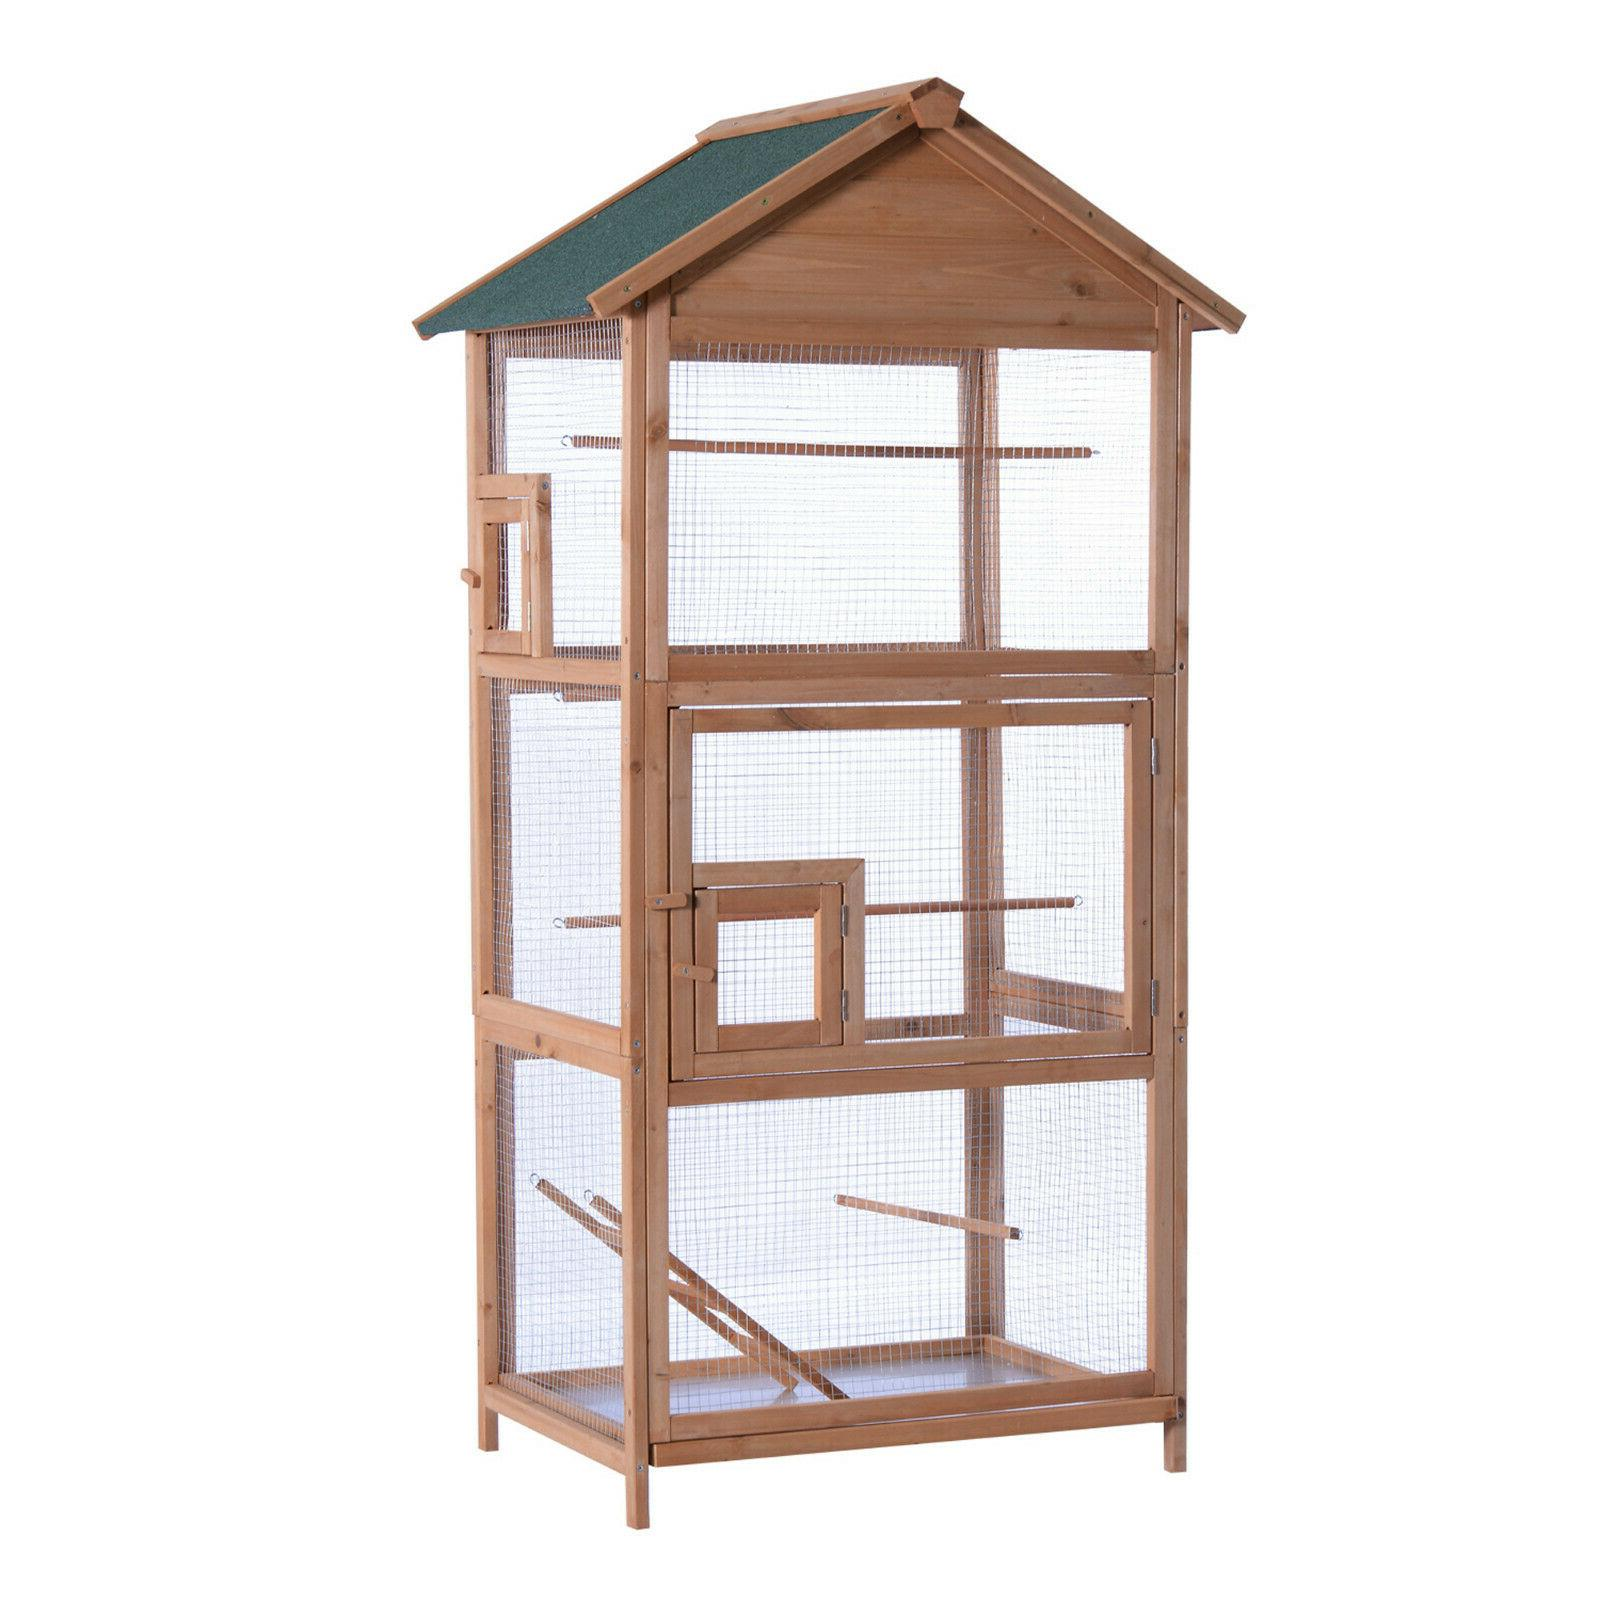 70 outdoor aviary bird cage wood vertical